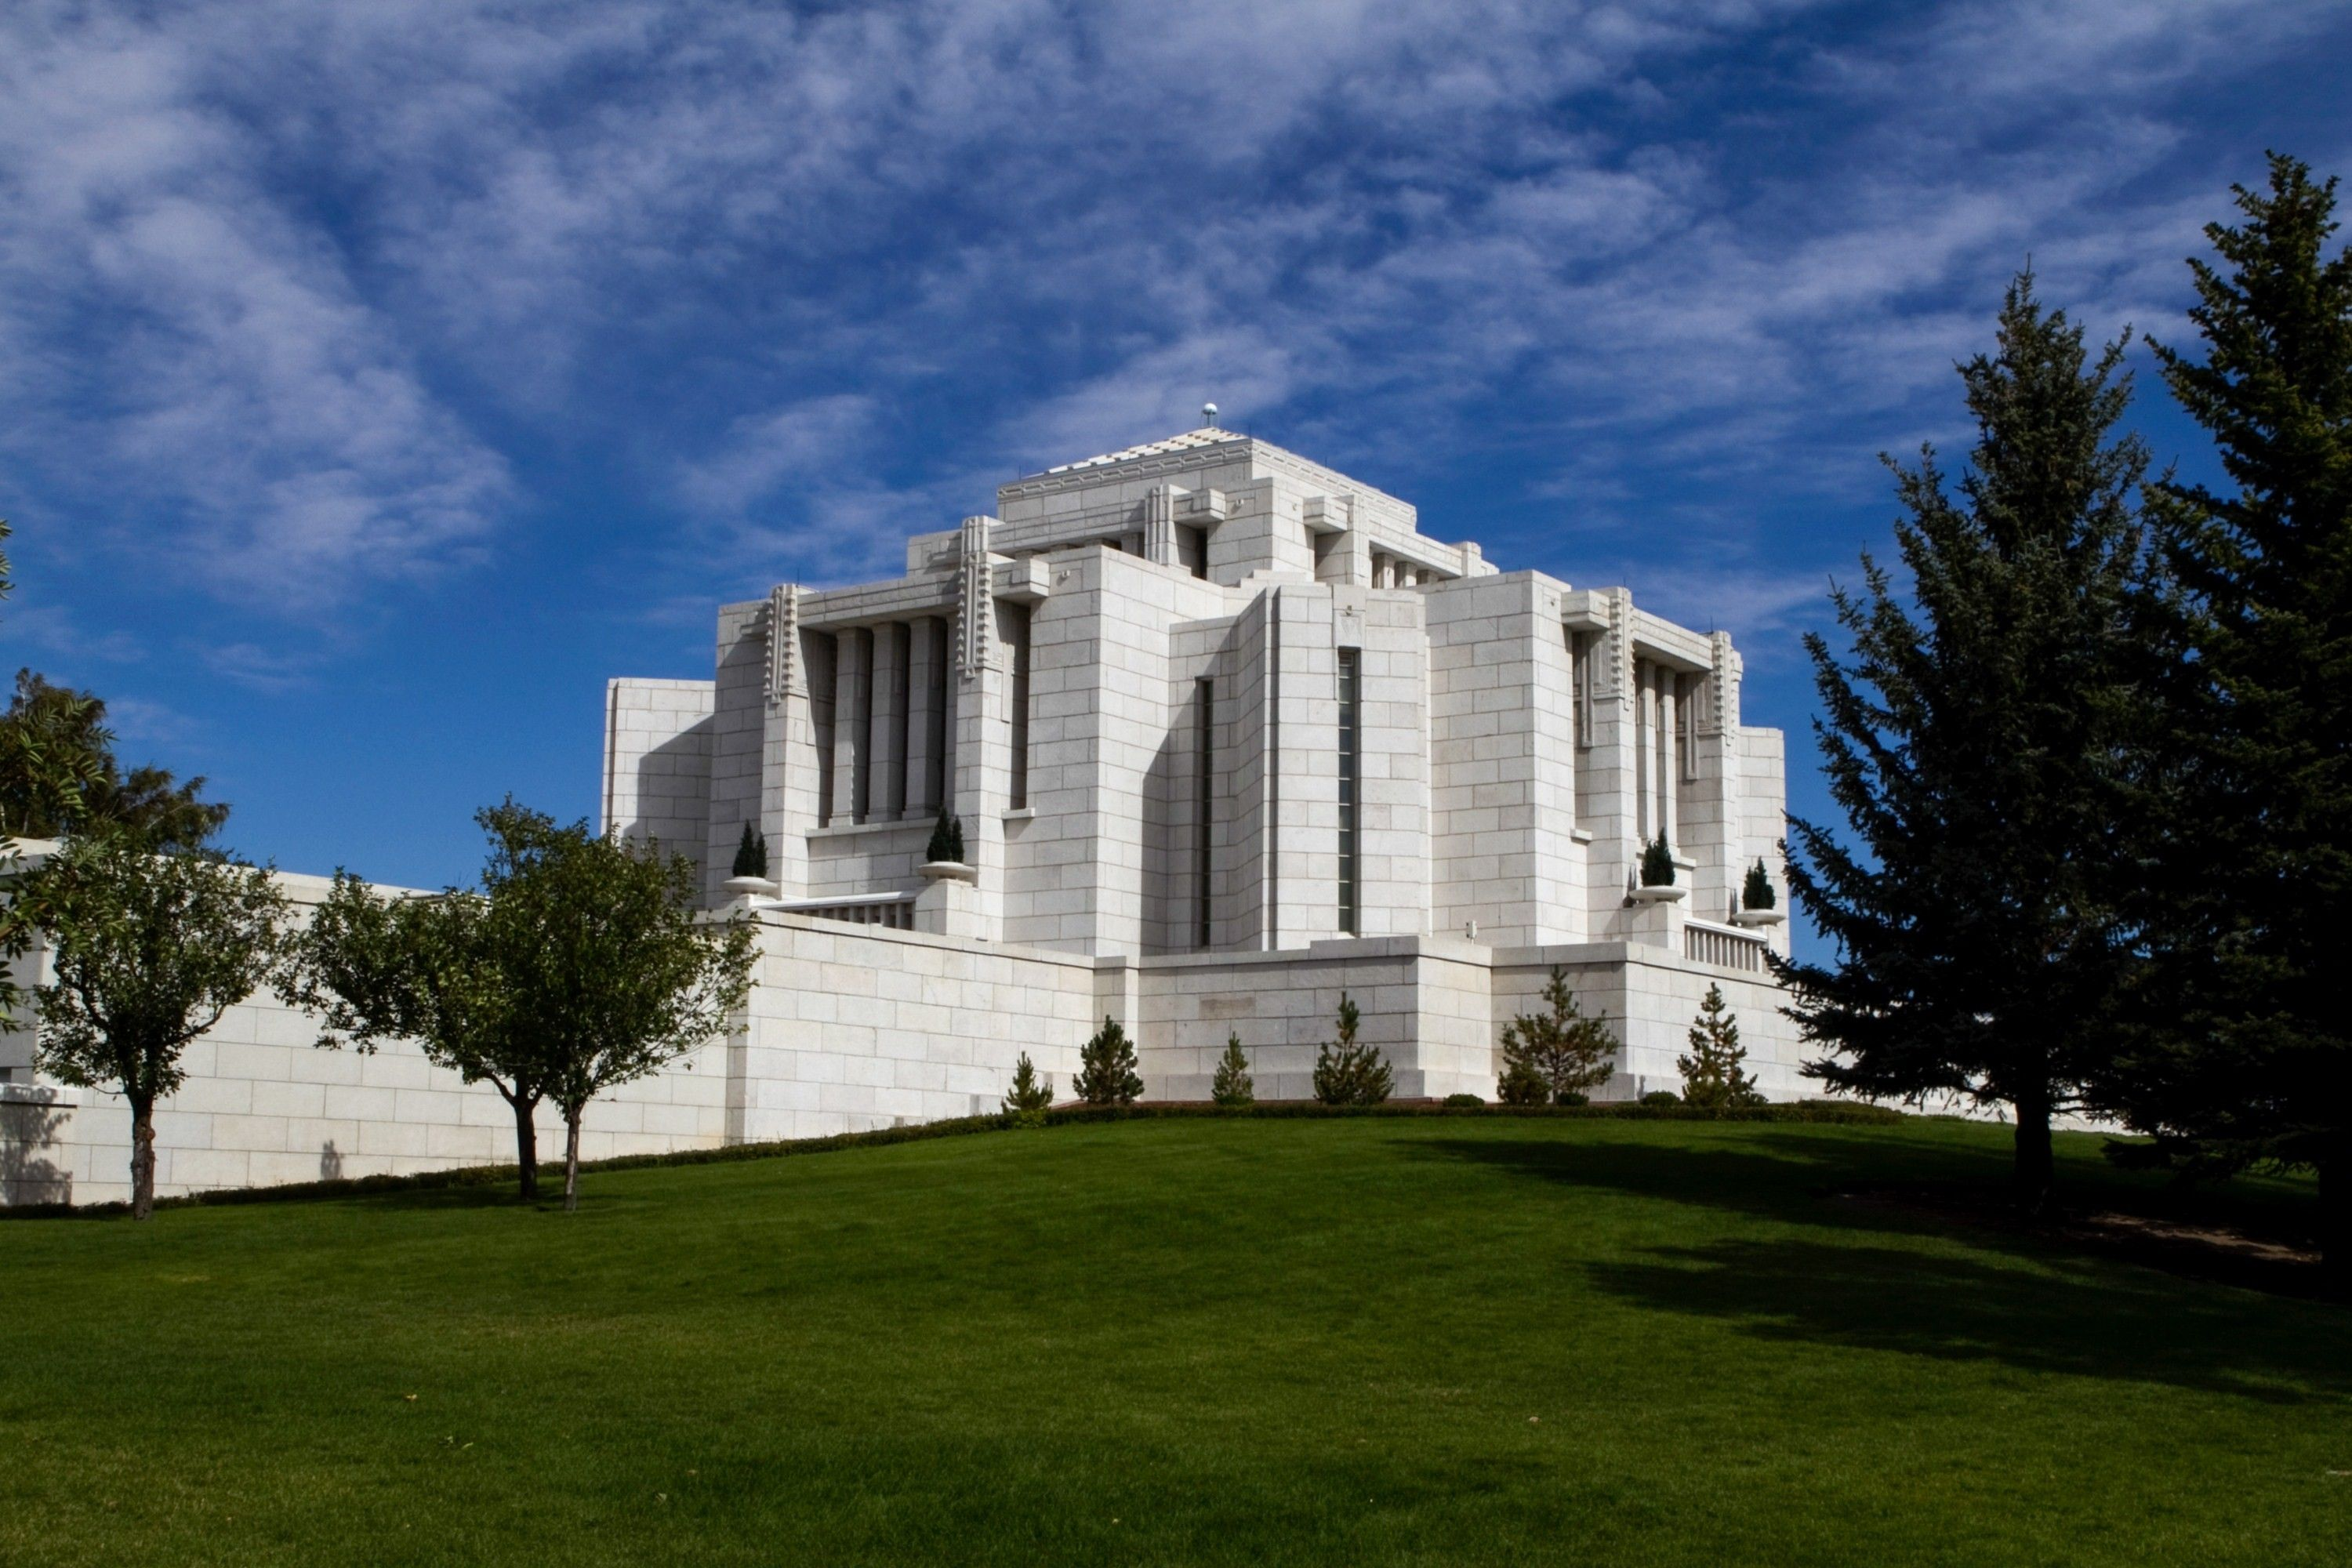 A side view of the Cardston Alberta Temple, including scenery.